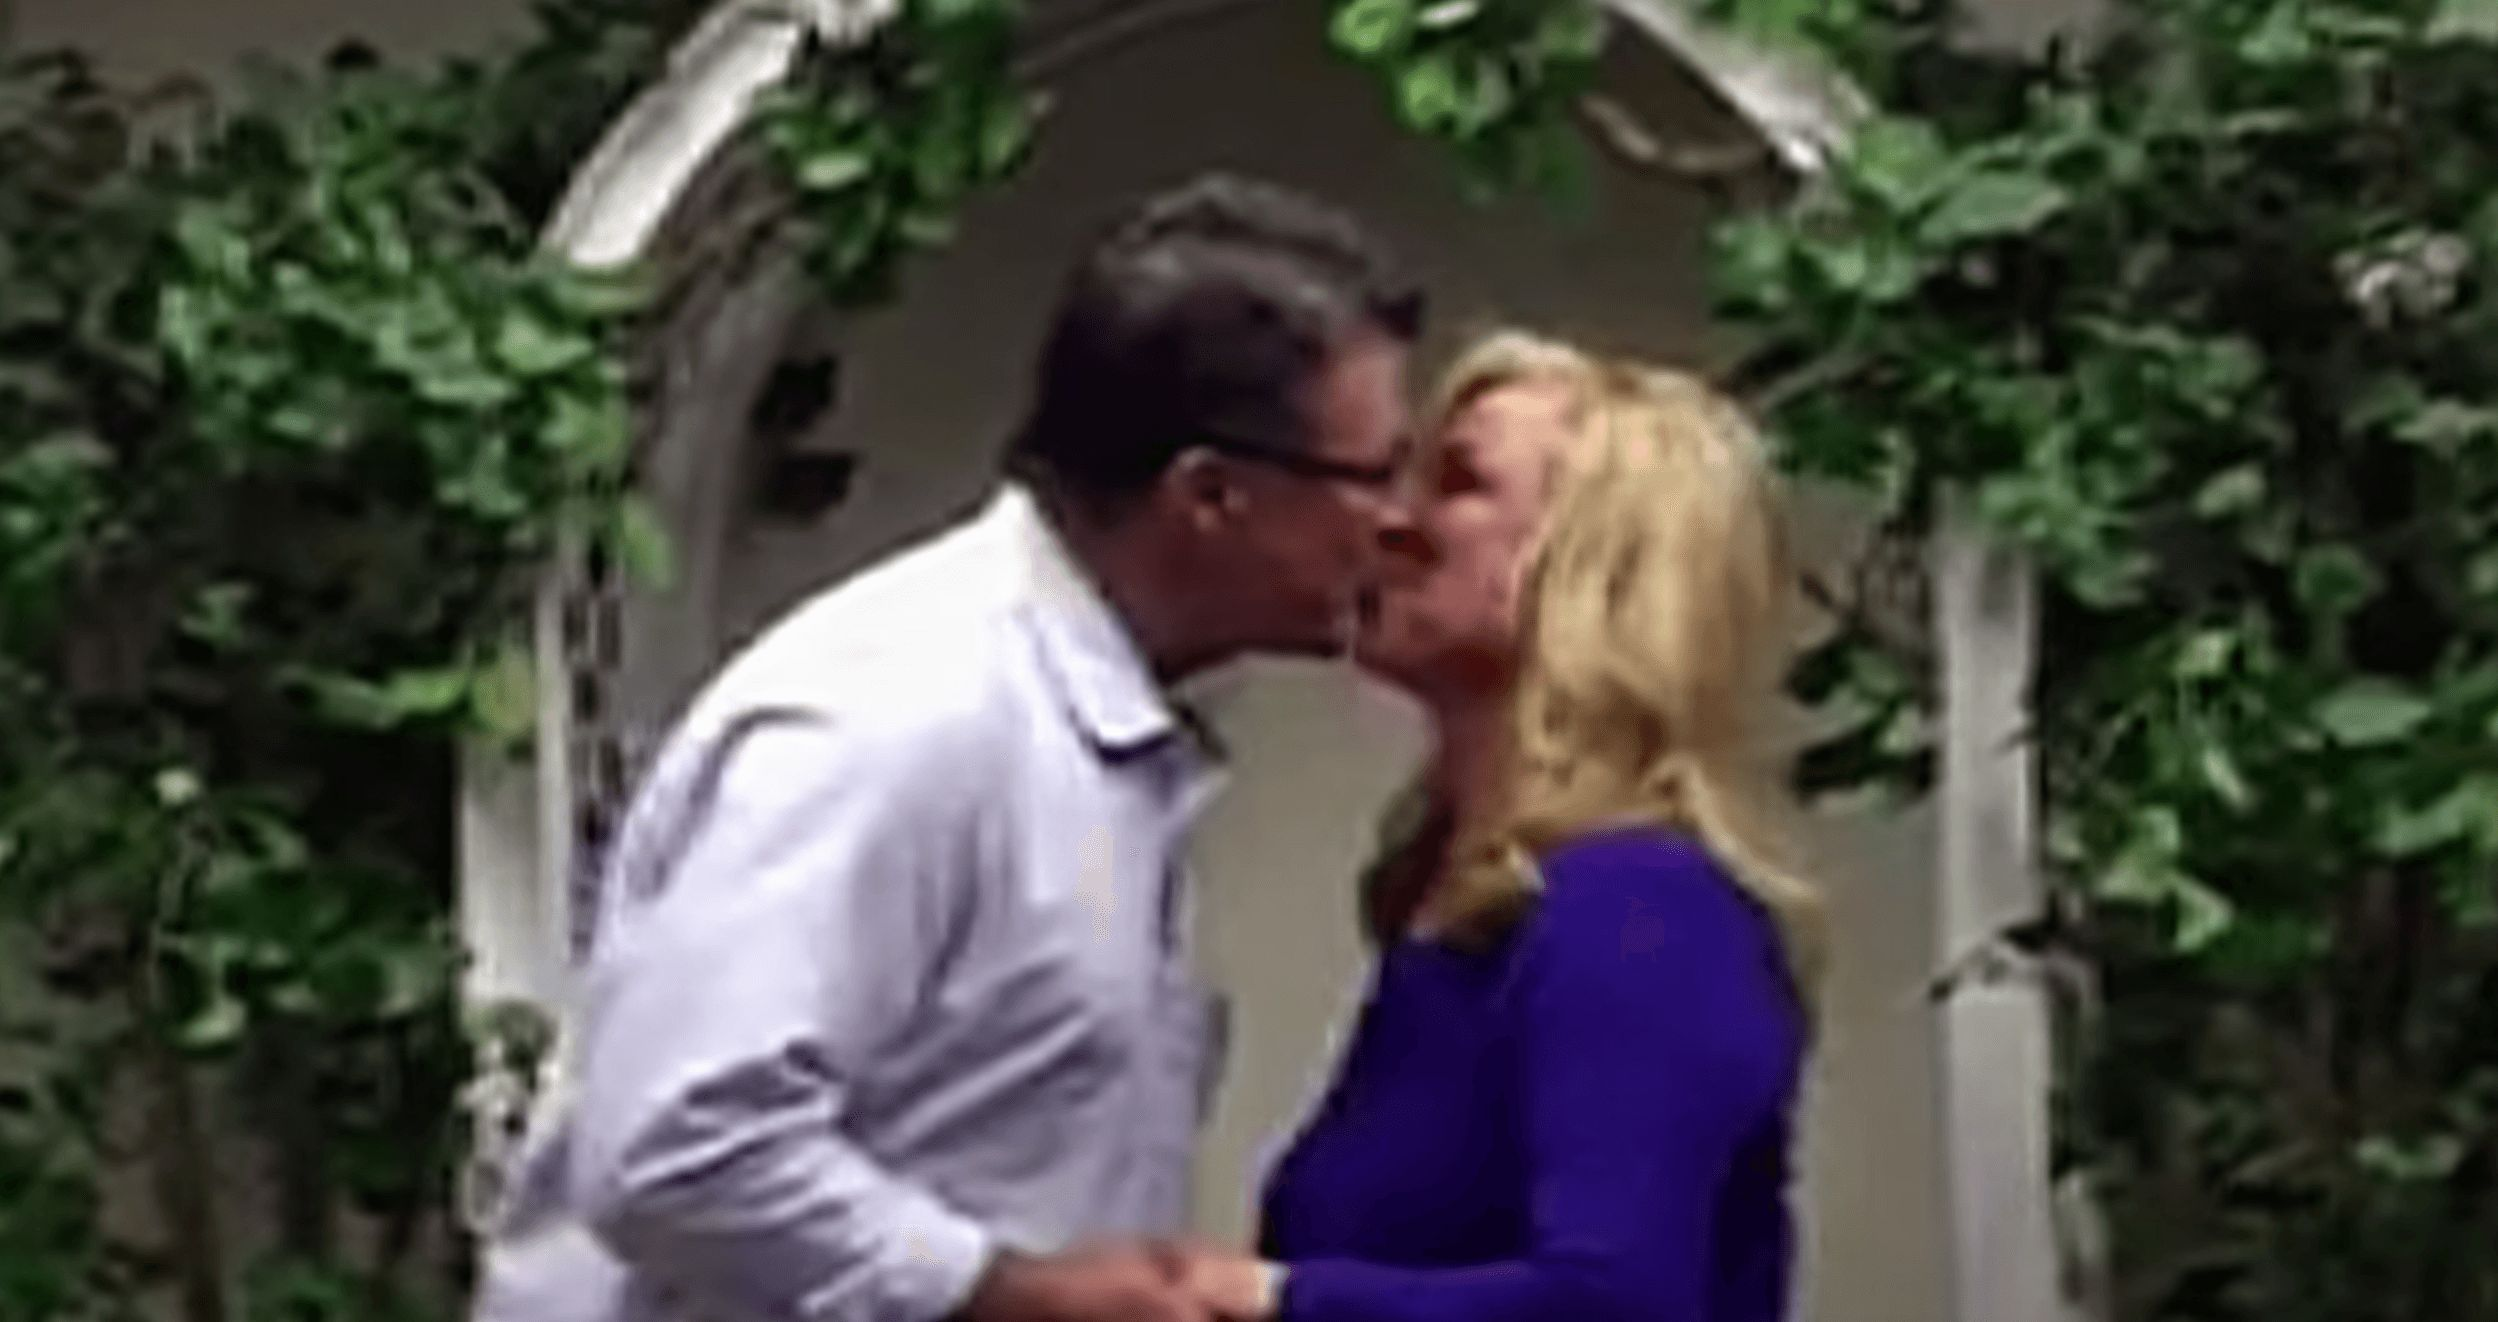 Image may contain: Dirty John: The Dirty Truth, Dirty John, John Meehan, Debra Newell, Netflix, true crime, Dating, Kiss, Kissing, Make Out, Human, Person